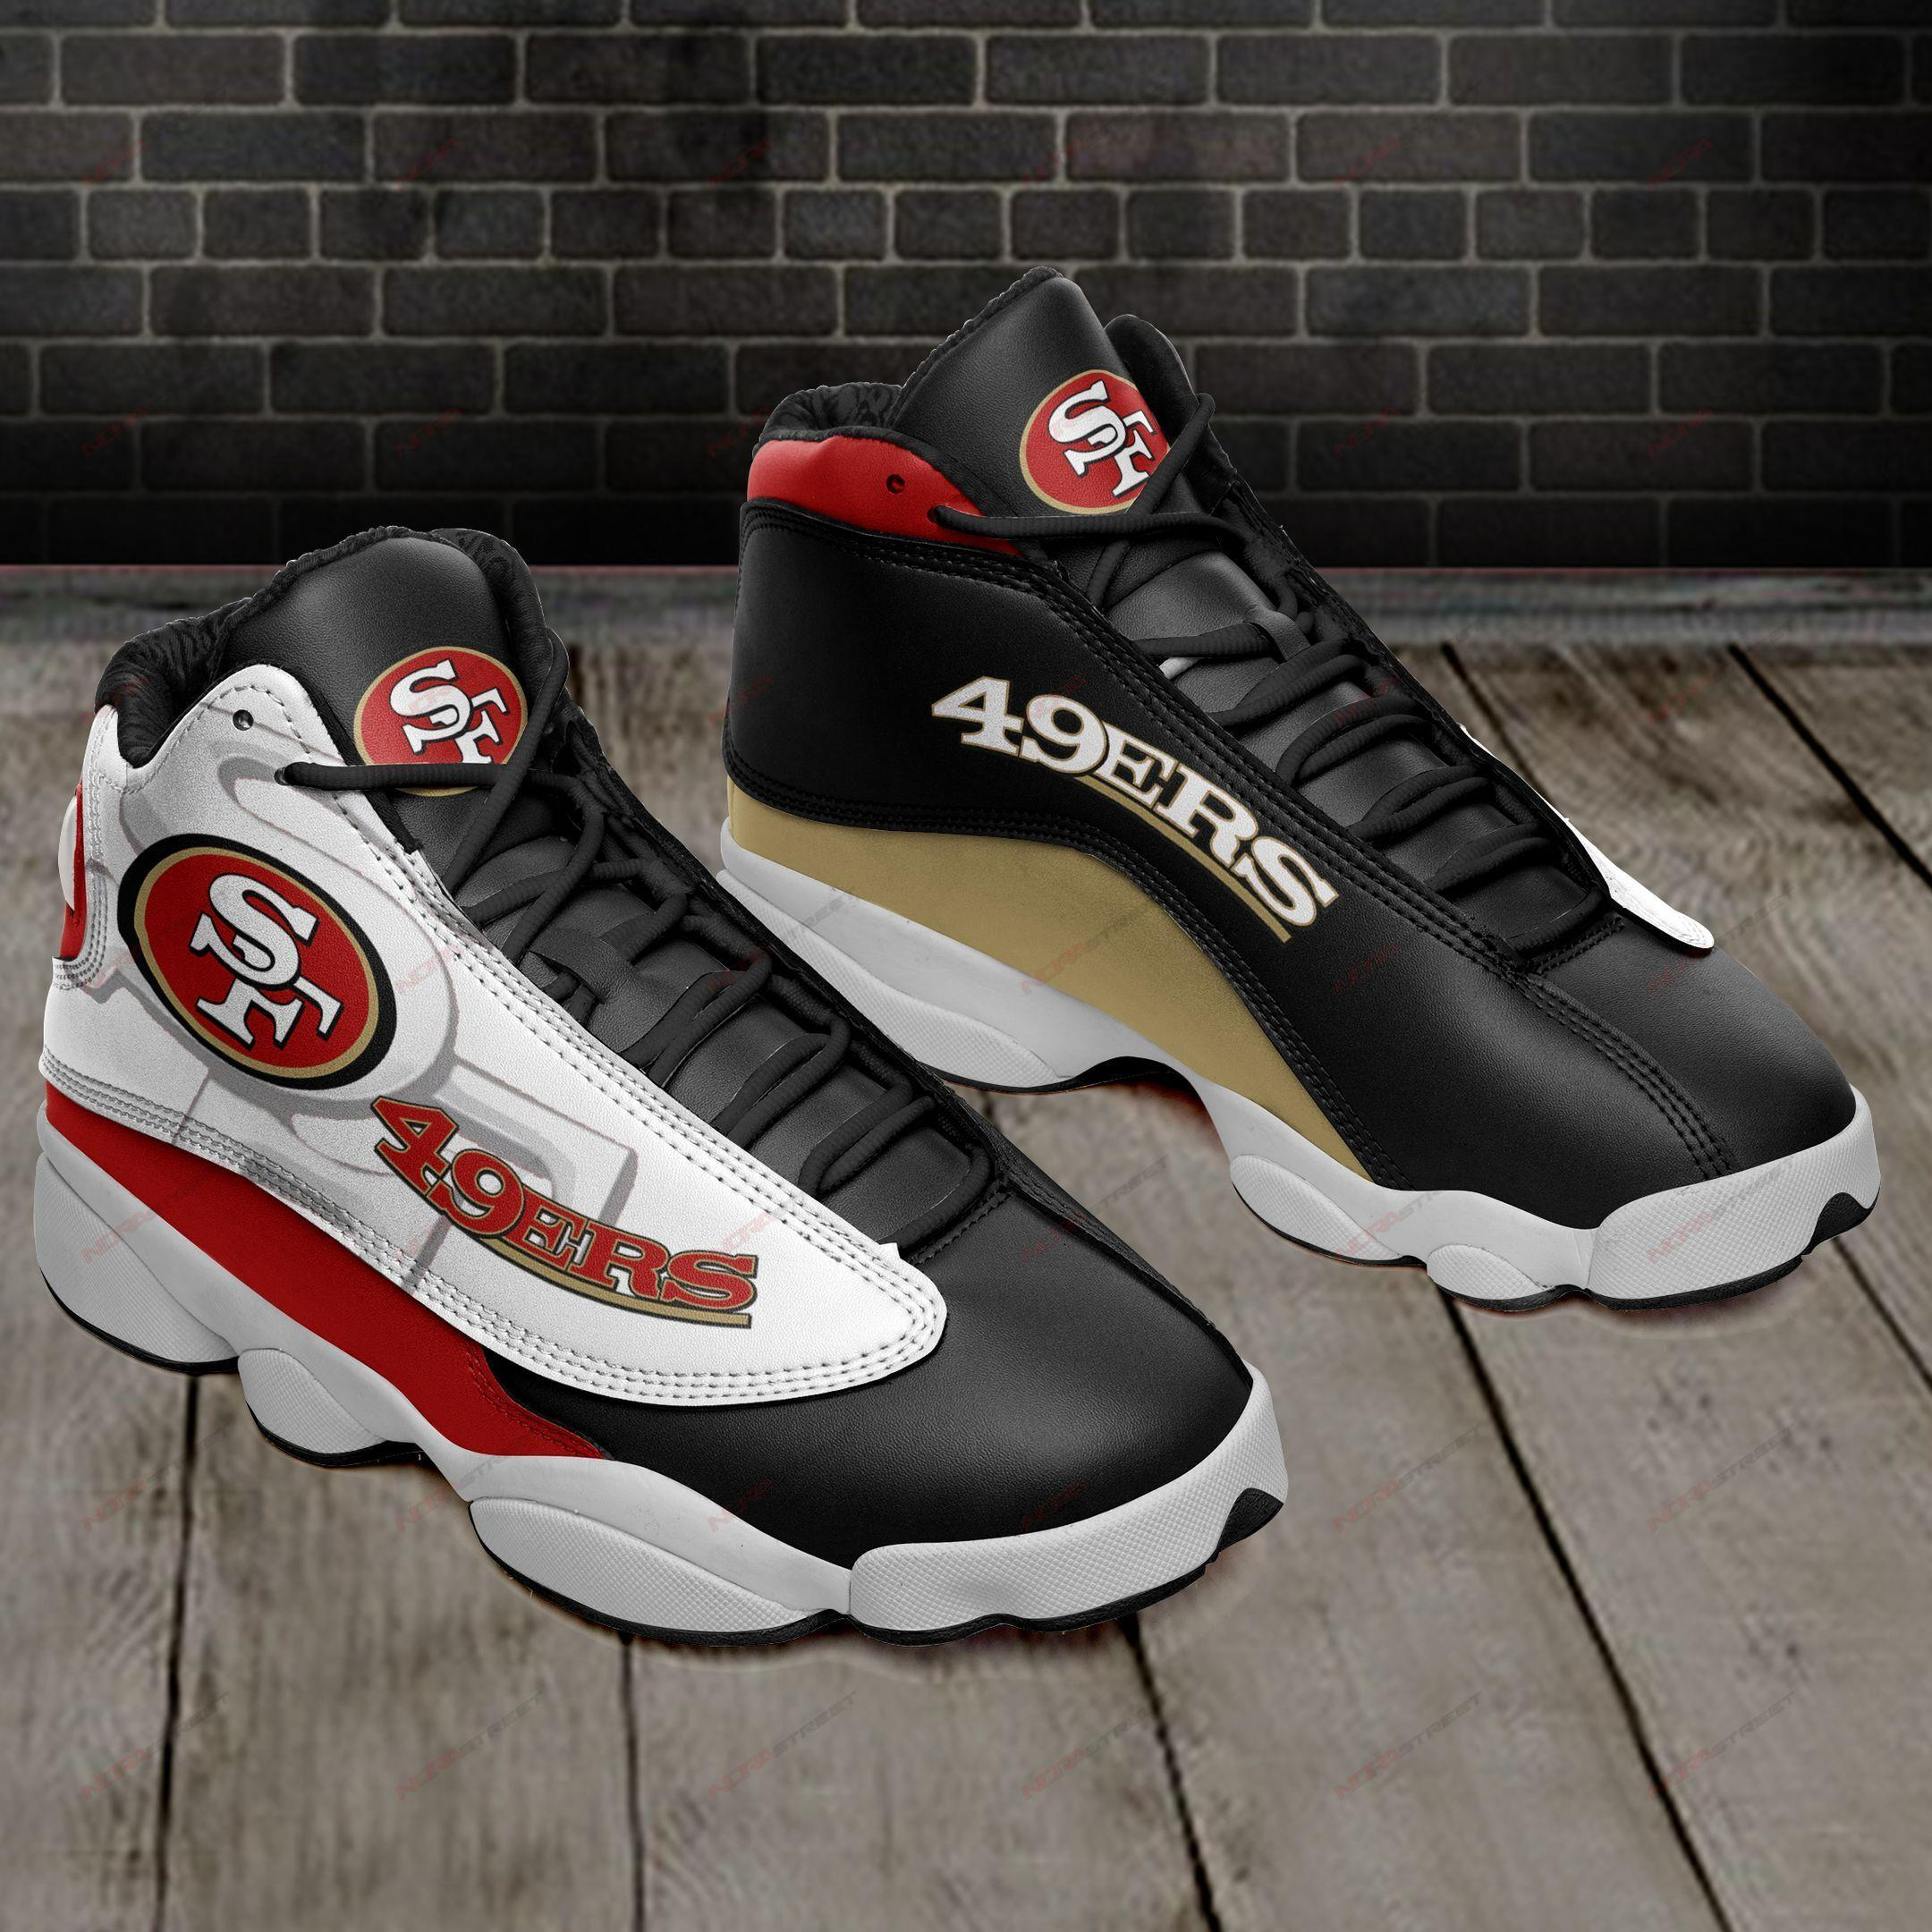 San Francisco 49ers Air Jordan 13 Sneakers Sport Shoes Full Size